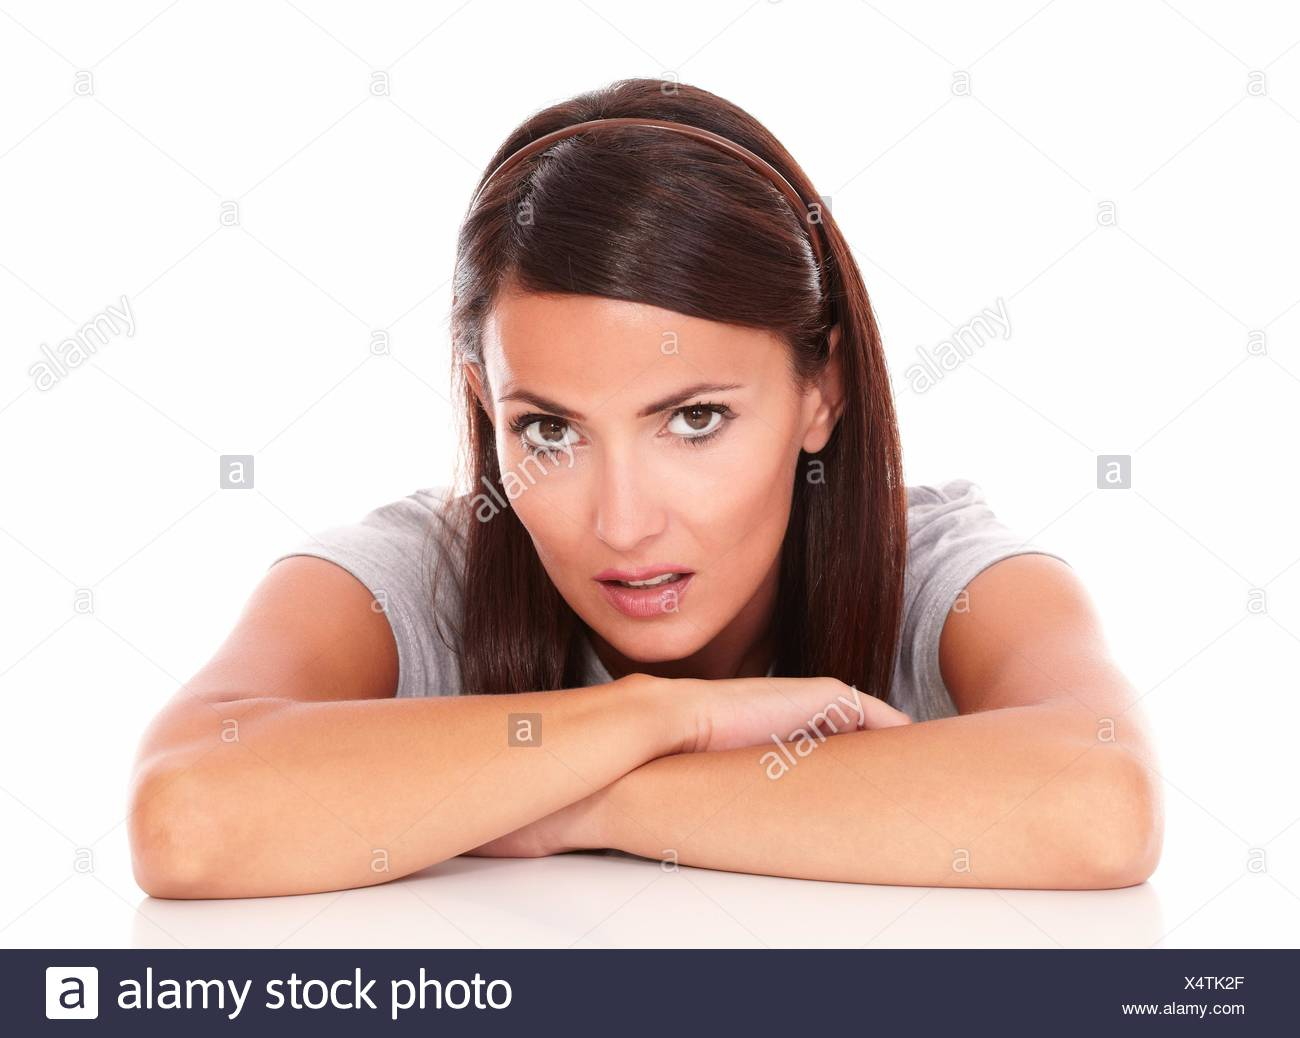 Head and shoulders portrait of unsmiling beautiful female looking at camera on isolated background. - Stock Image